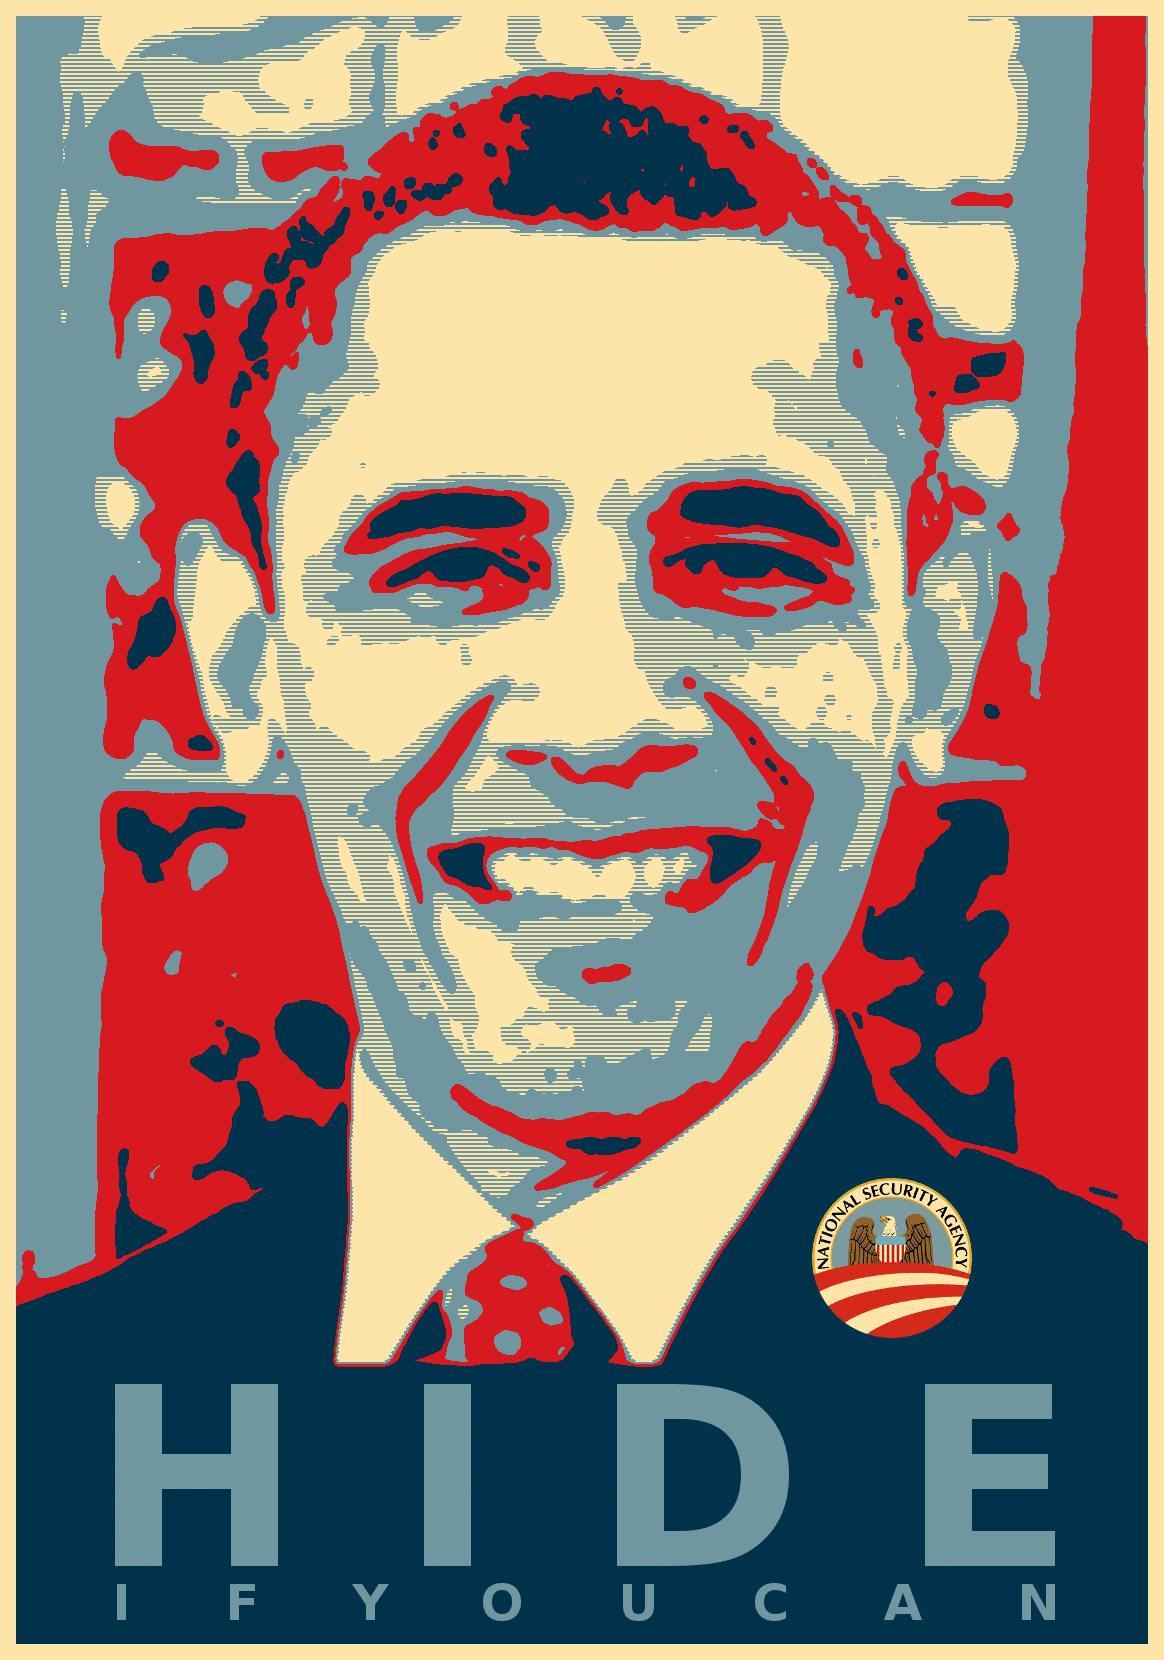 Obama Hide Poster - Hide if you can